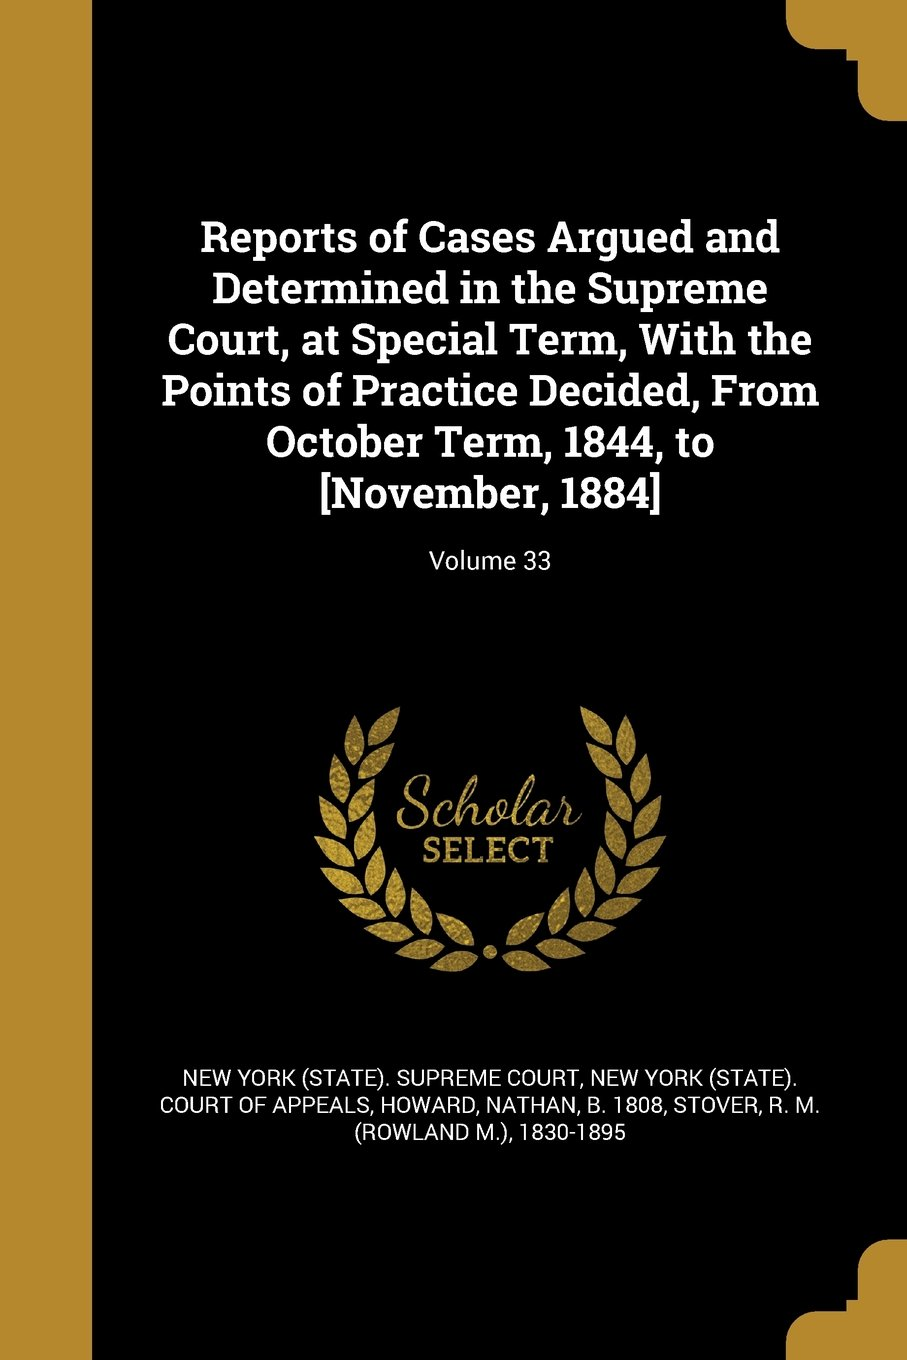 Read Online Reports of Cases Argued and Determined in the Supreme Court, at Special Term, with the Points of Practice Decided, from October Term, 1844, to [November, 1884]; Volume 33 ebook